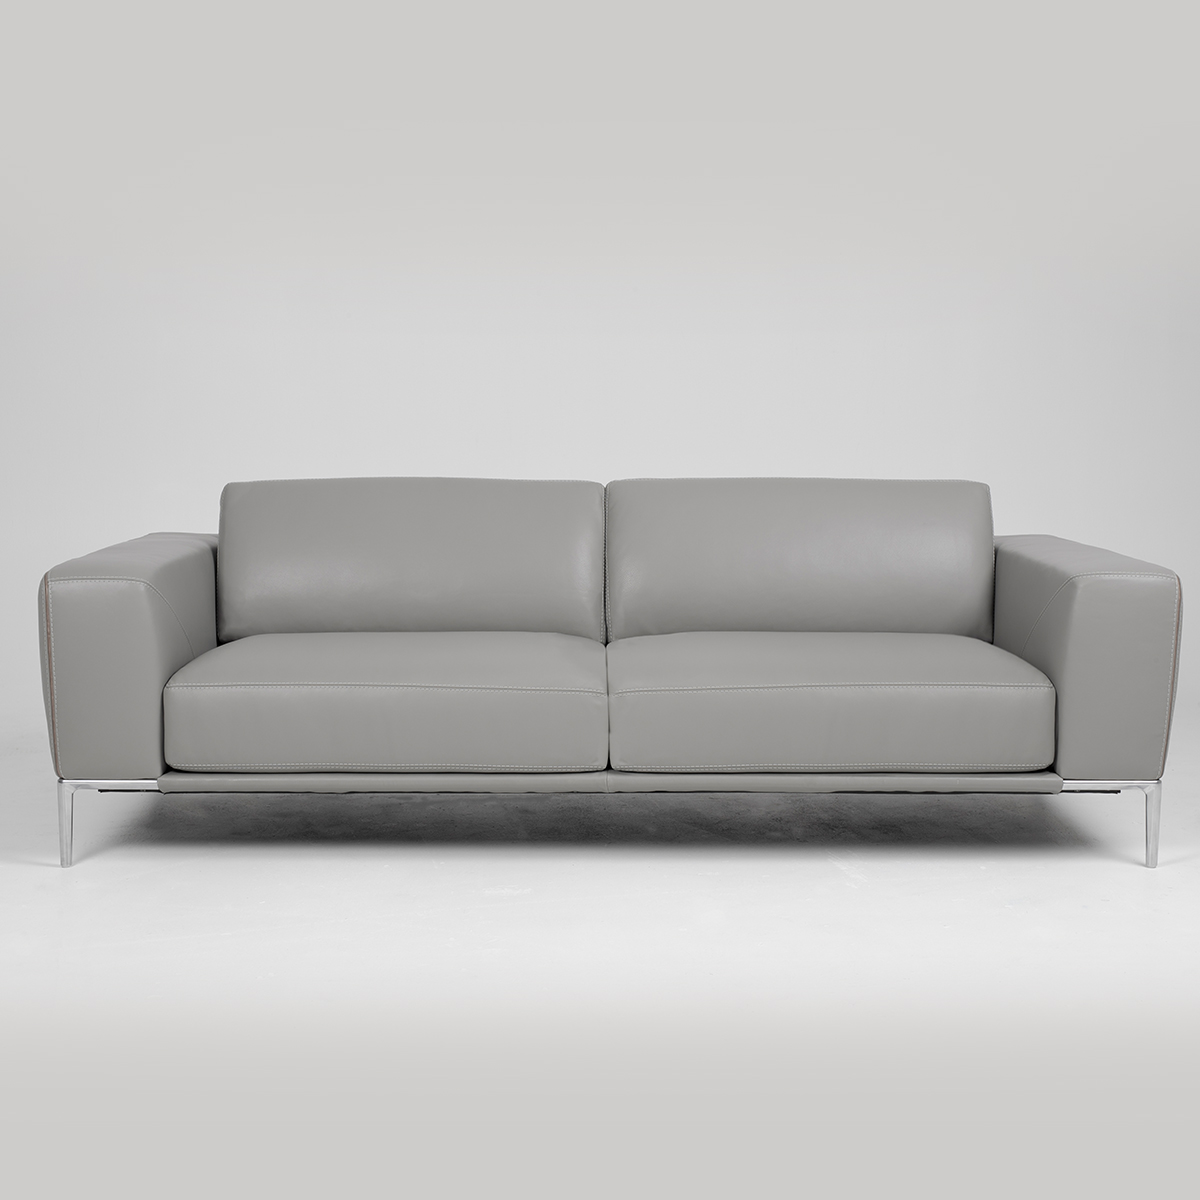 Designer Couch Klein All Products Sofas Sectionals Page 1 American Leather